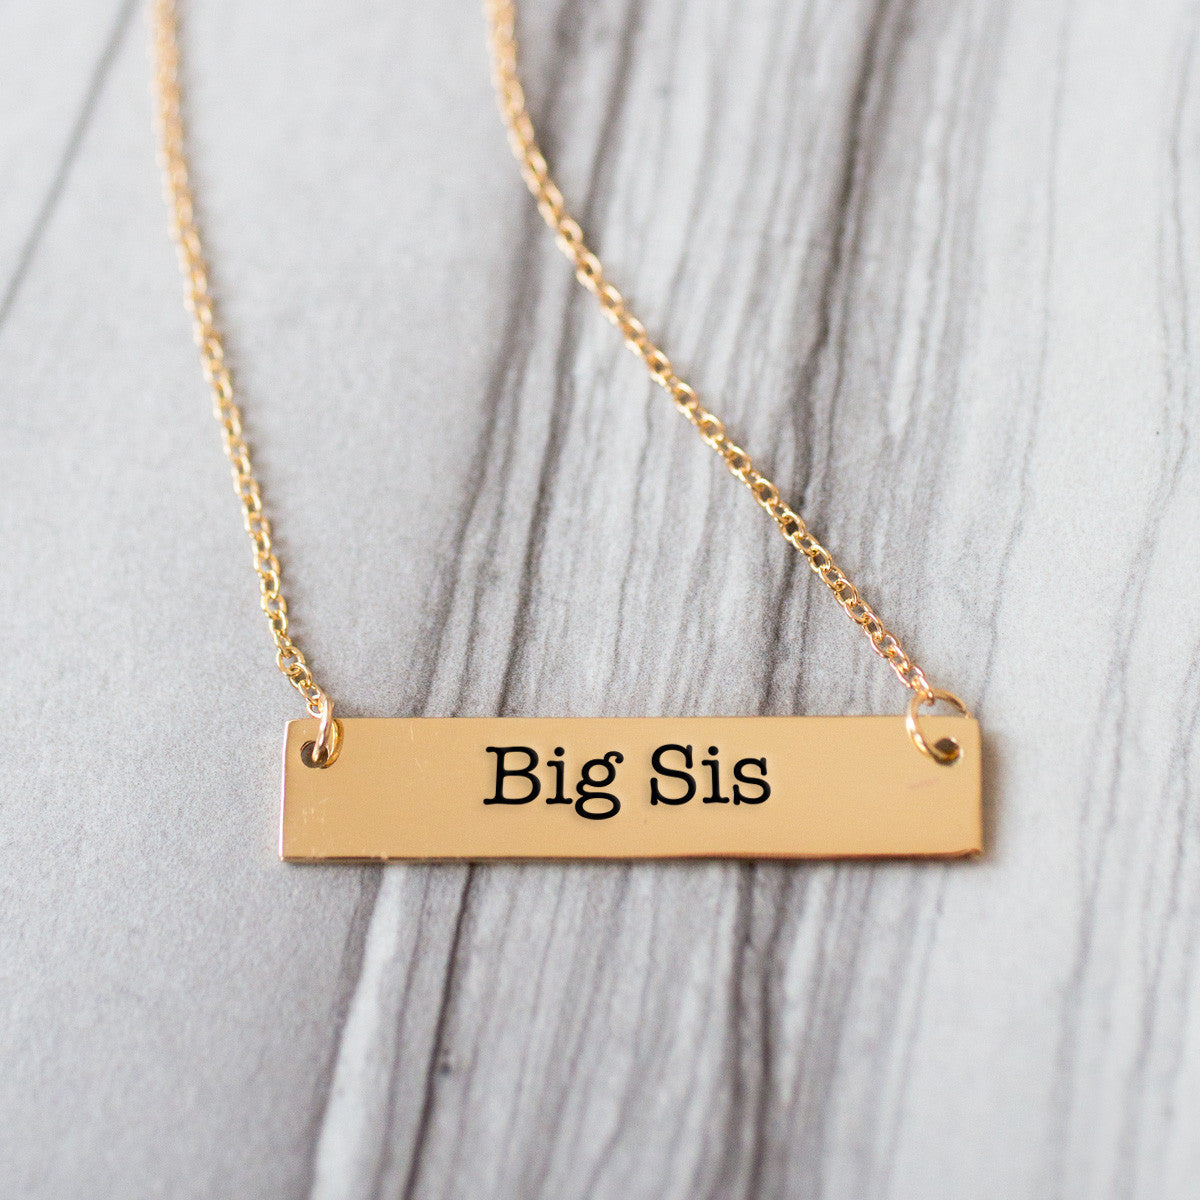 Big Sister Gold / Silver Bar Necklace - Sister Gifts - pipercleo.com